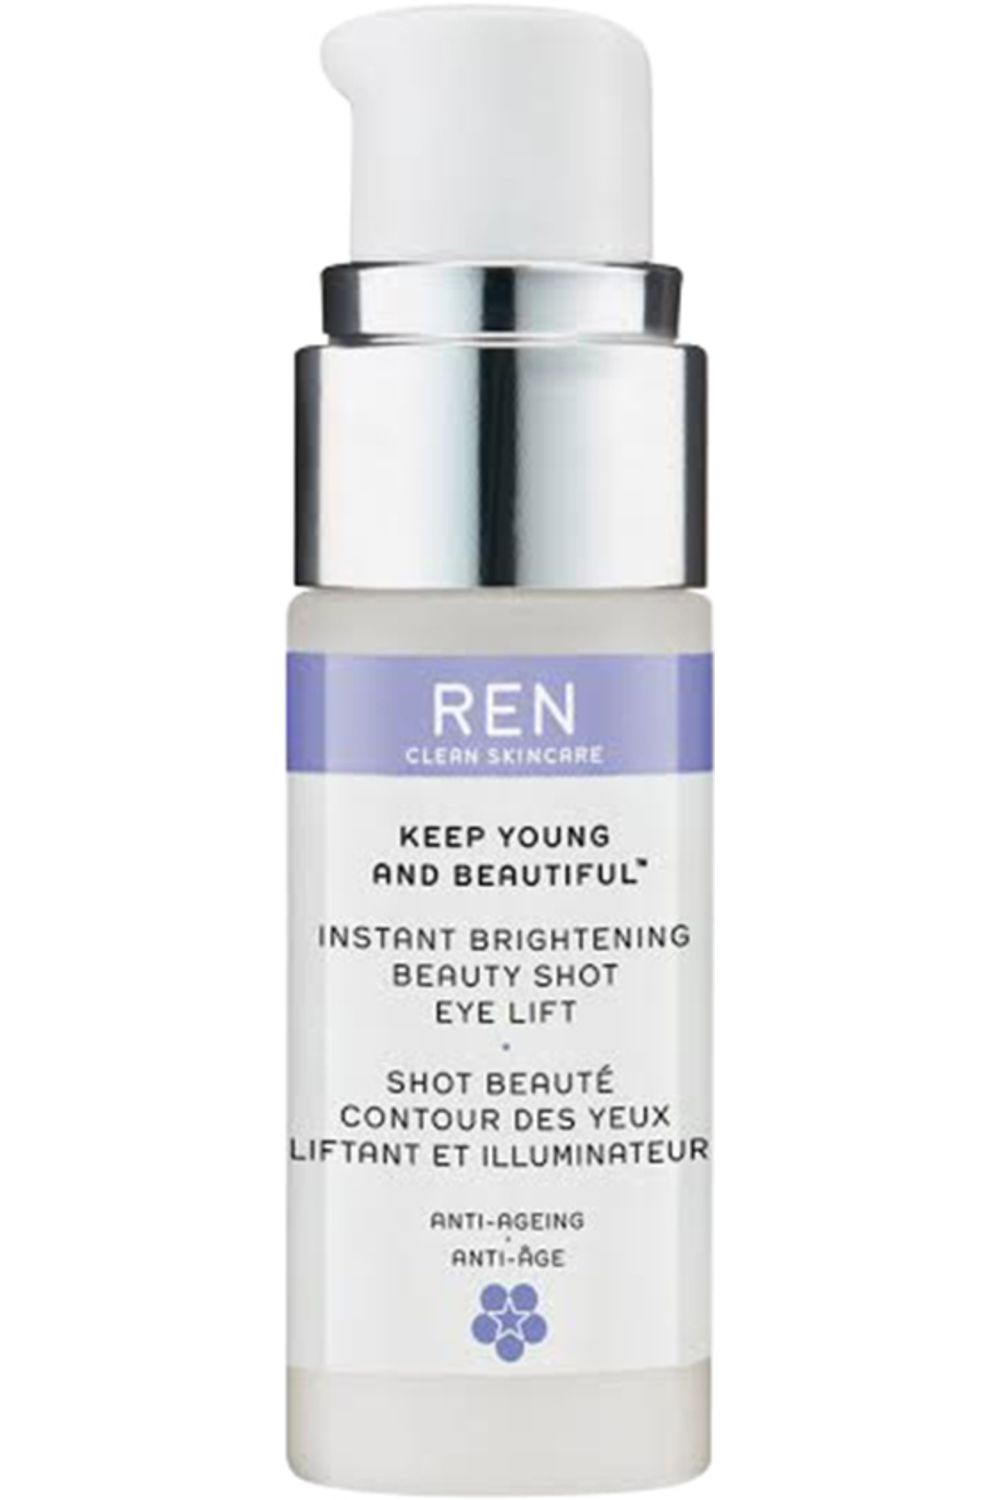 Blissim : REN - Shot beauté contour des yeux liftant et illuminateur Keep Young And Beautiful - Shot beauté contour des yeux liftant et illuminateur Keep Young And Beautiful